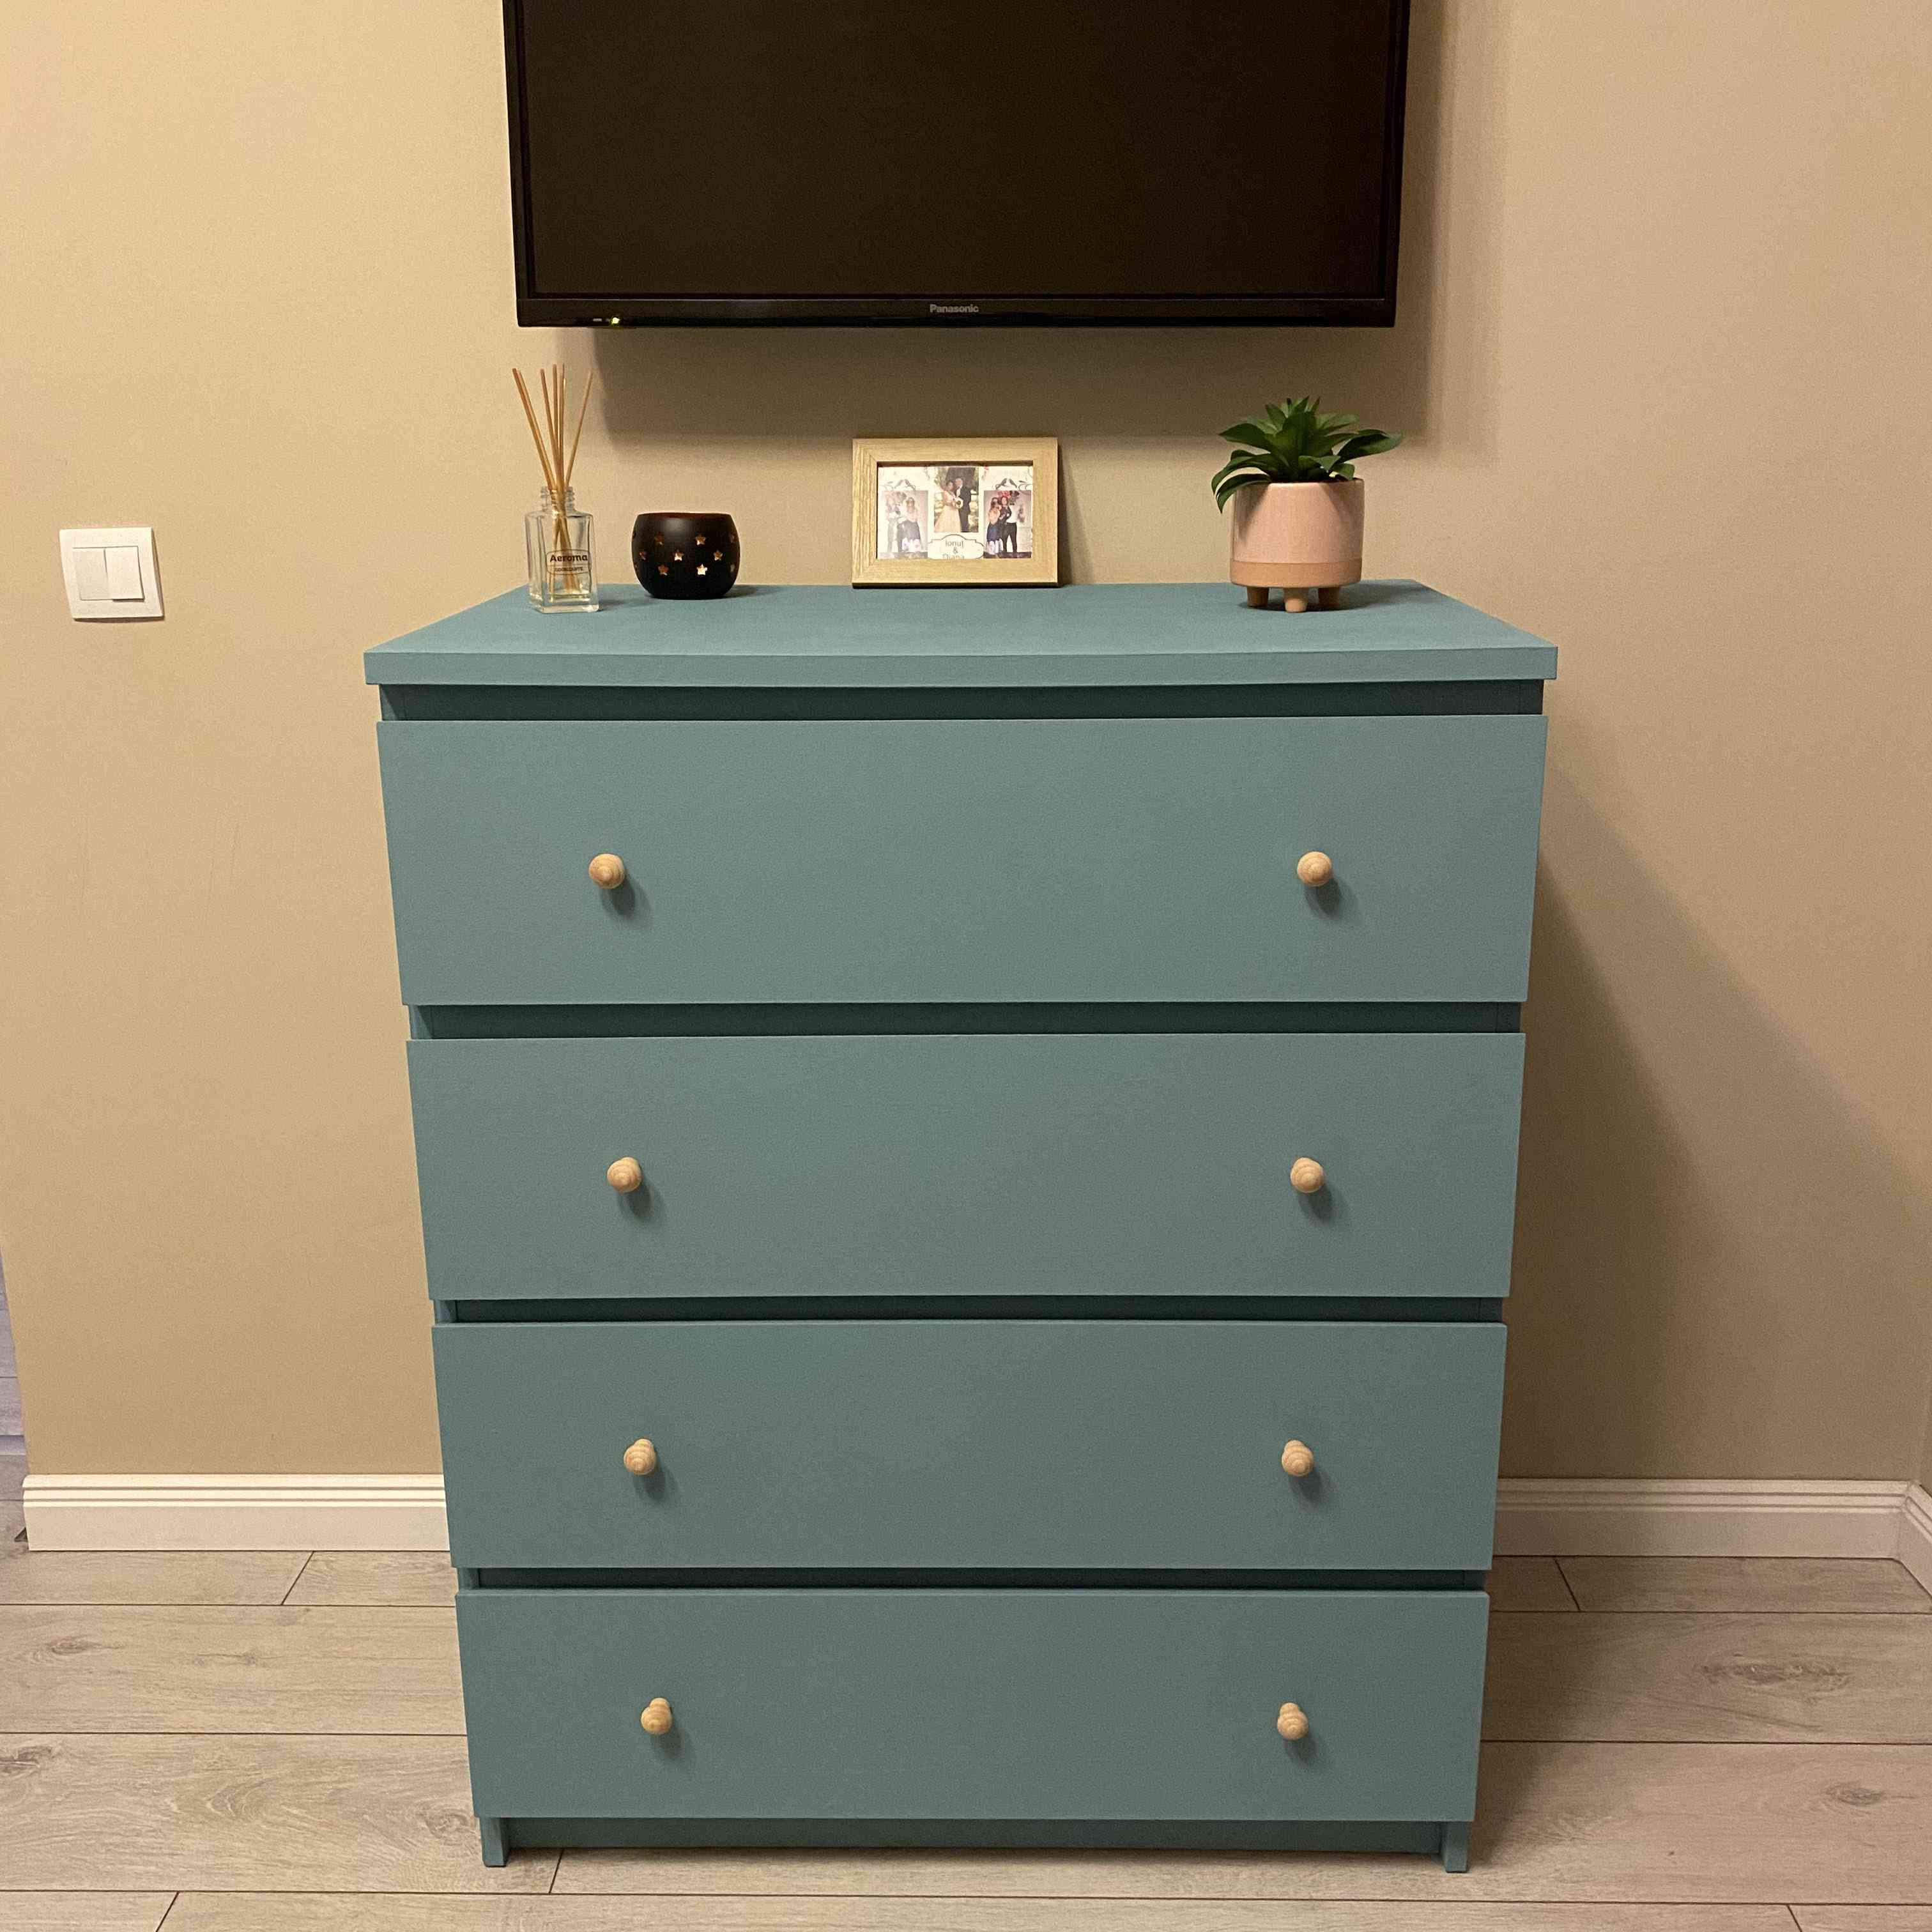 four-drawer malm dresser painted blue-green with wooden knobs